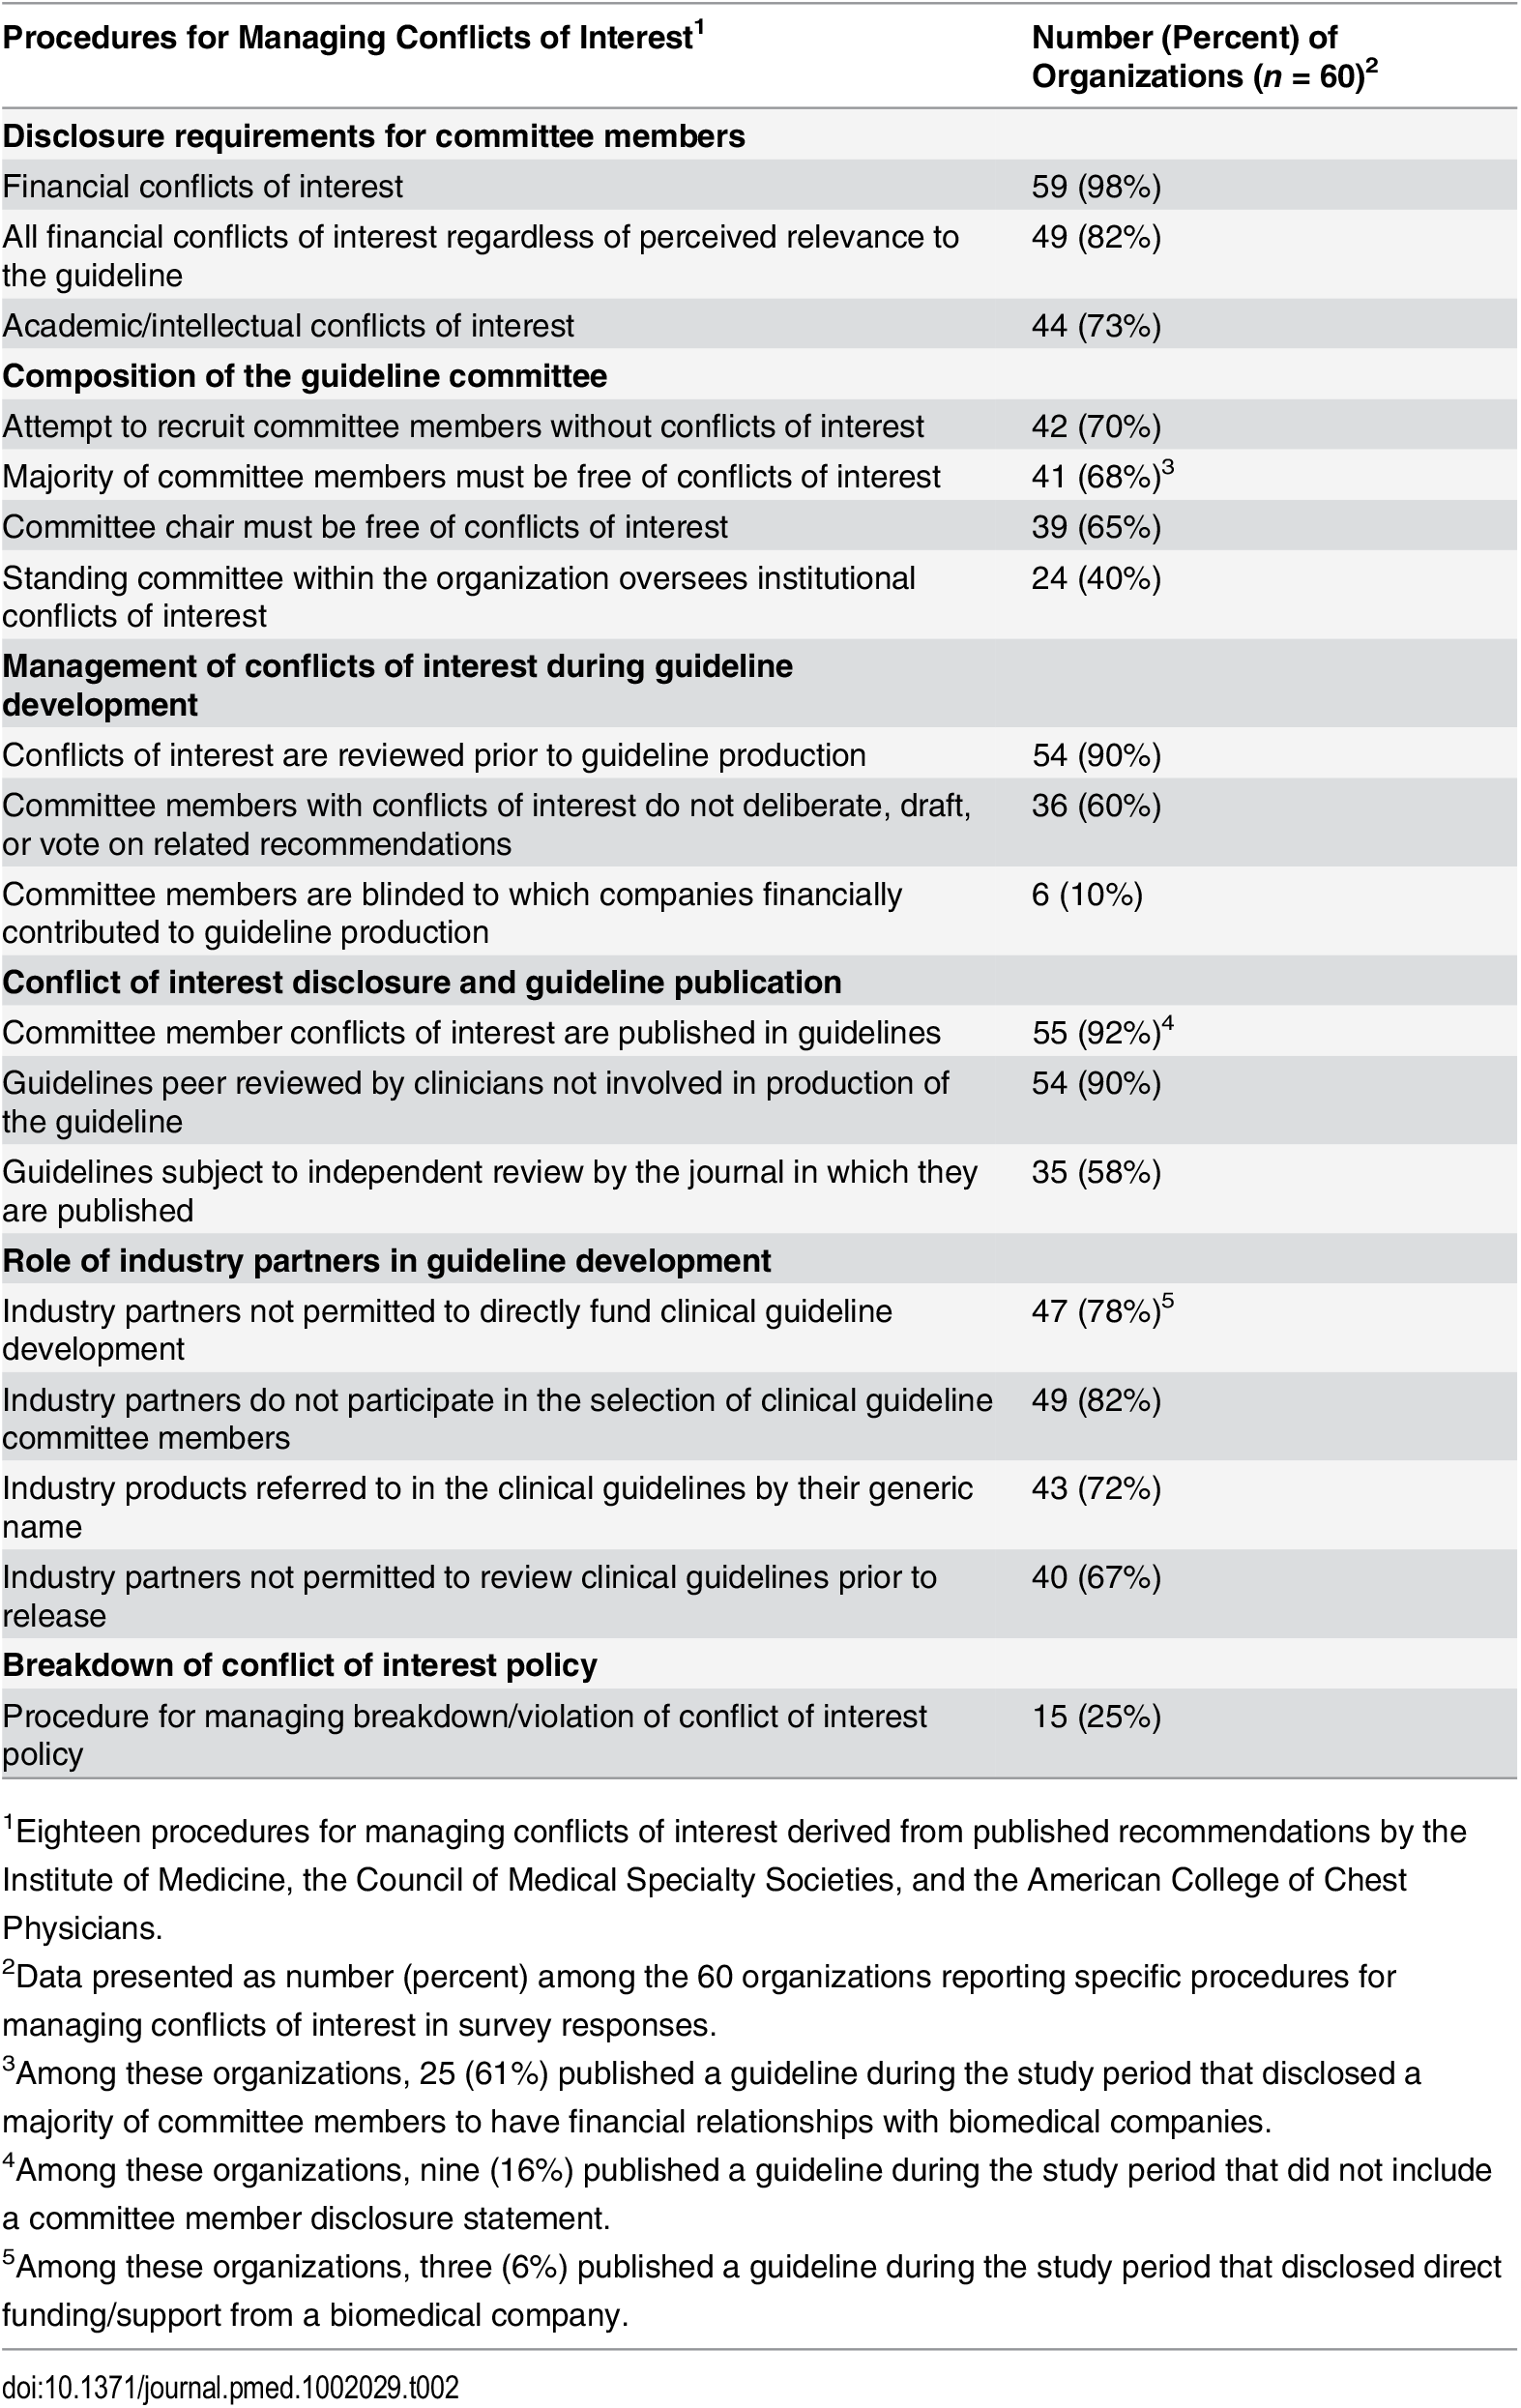 Procedures for managing conflicts of interest reported by organizations producing clinical practice guidelines.